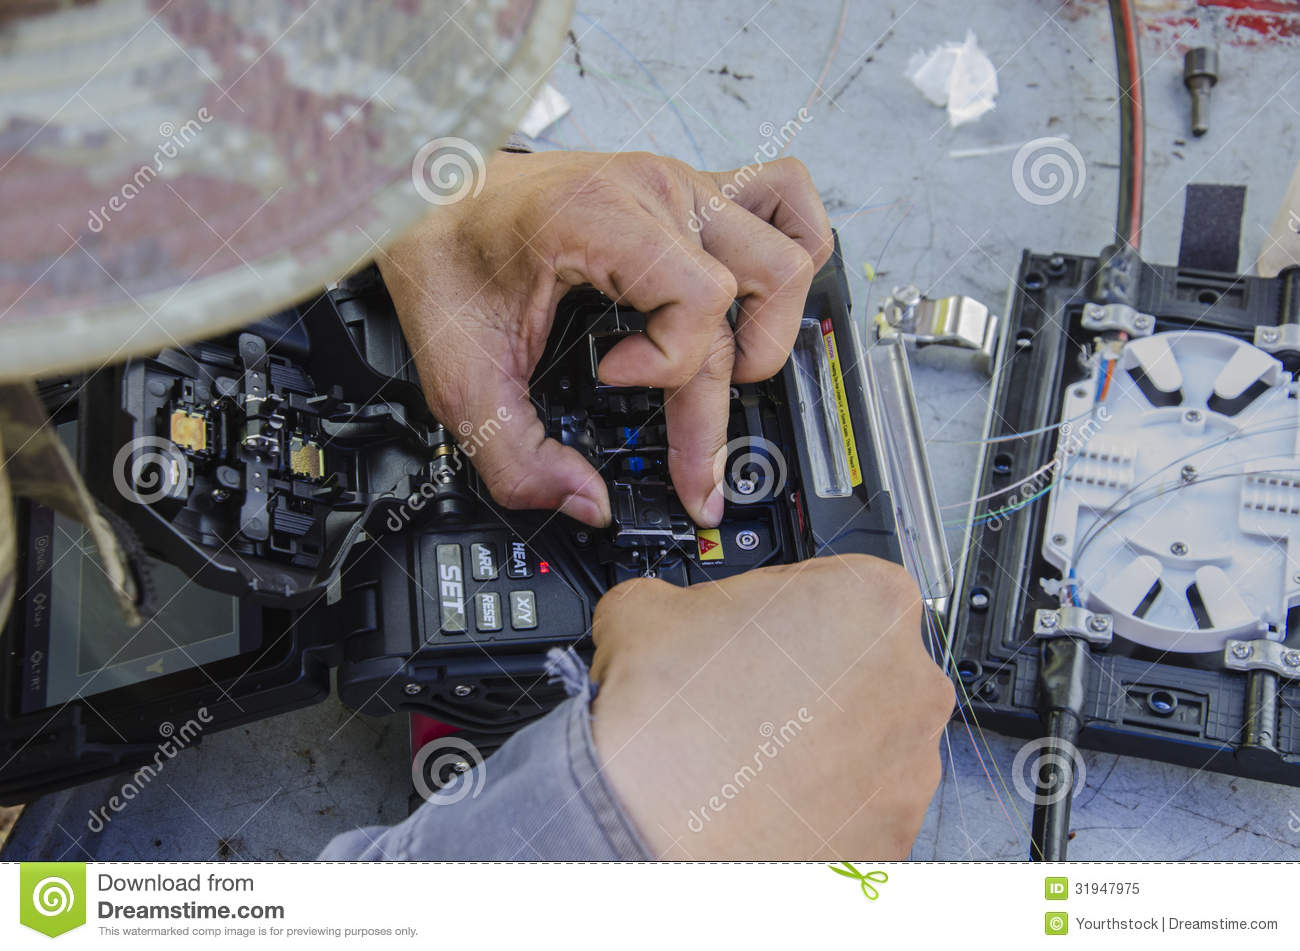 Fiber Optic Fusion Splicer Royalty Free Stock Photo - Image: 31947975